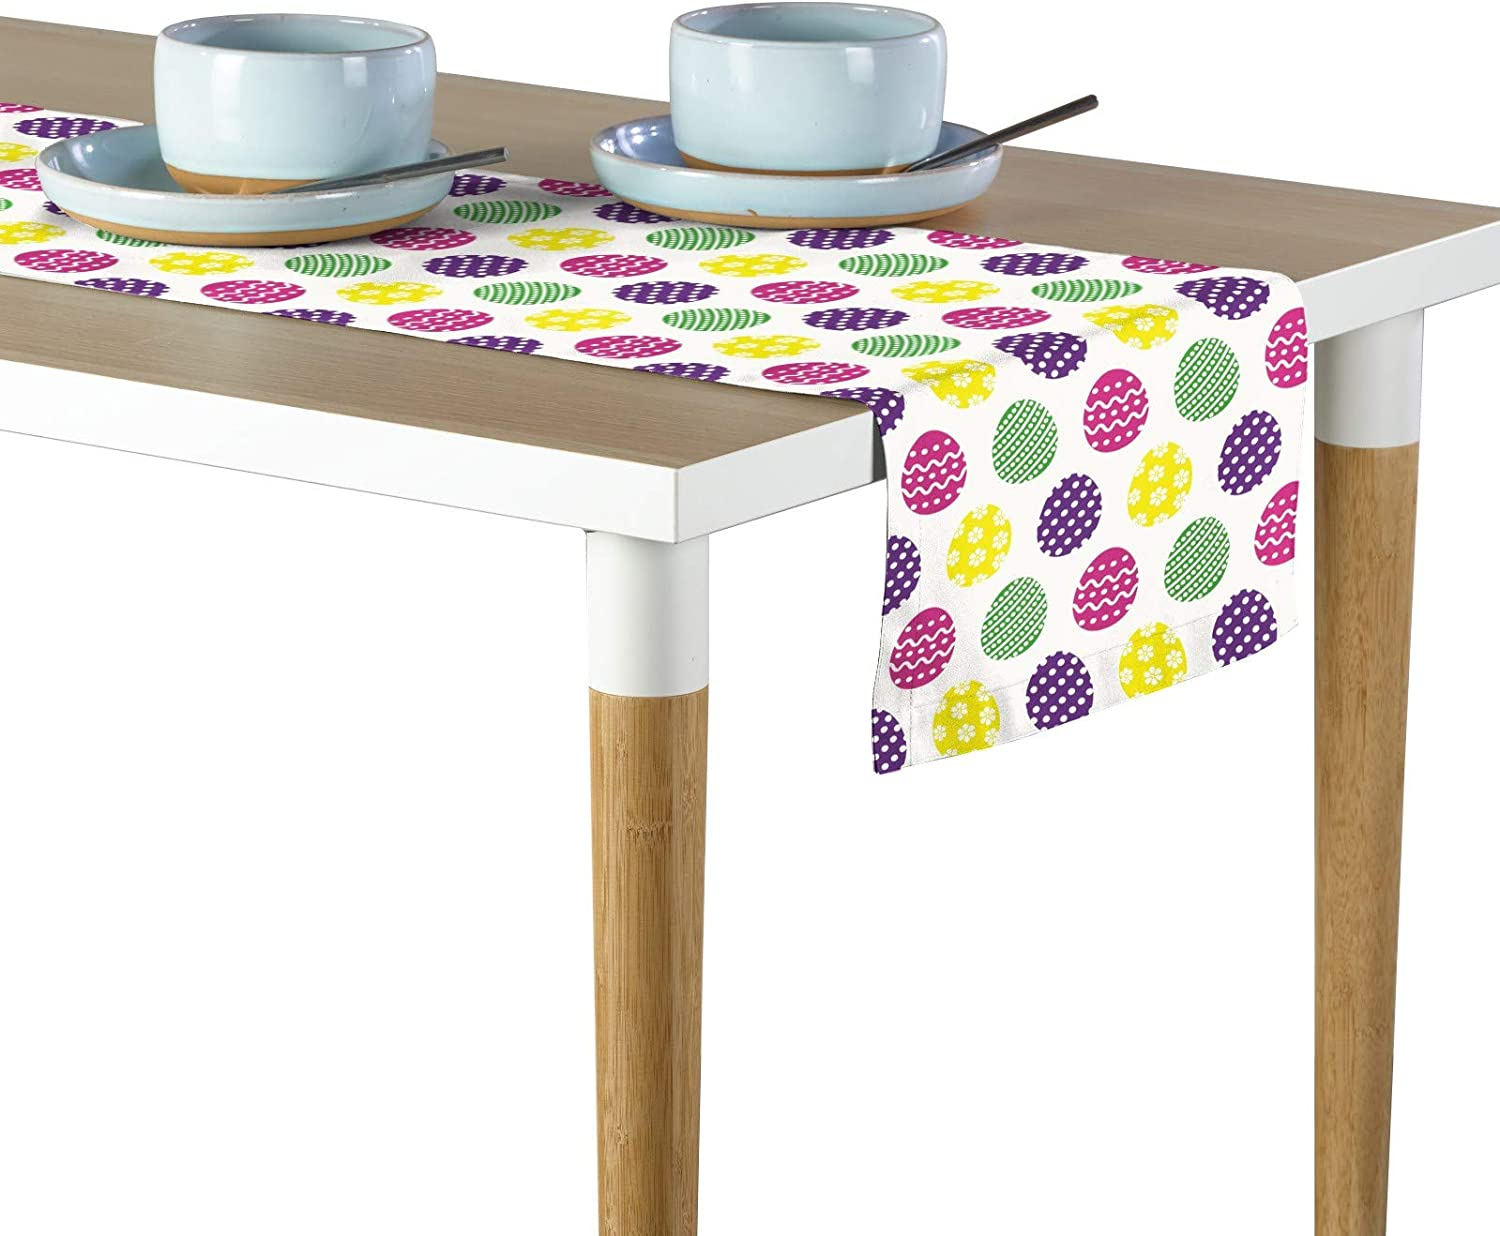 Milliken Colorful Fun Easter Eggs Signature Table Runner Assorted Sizes 14 X108 Home Kitchen